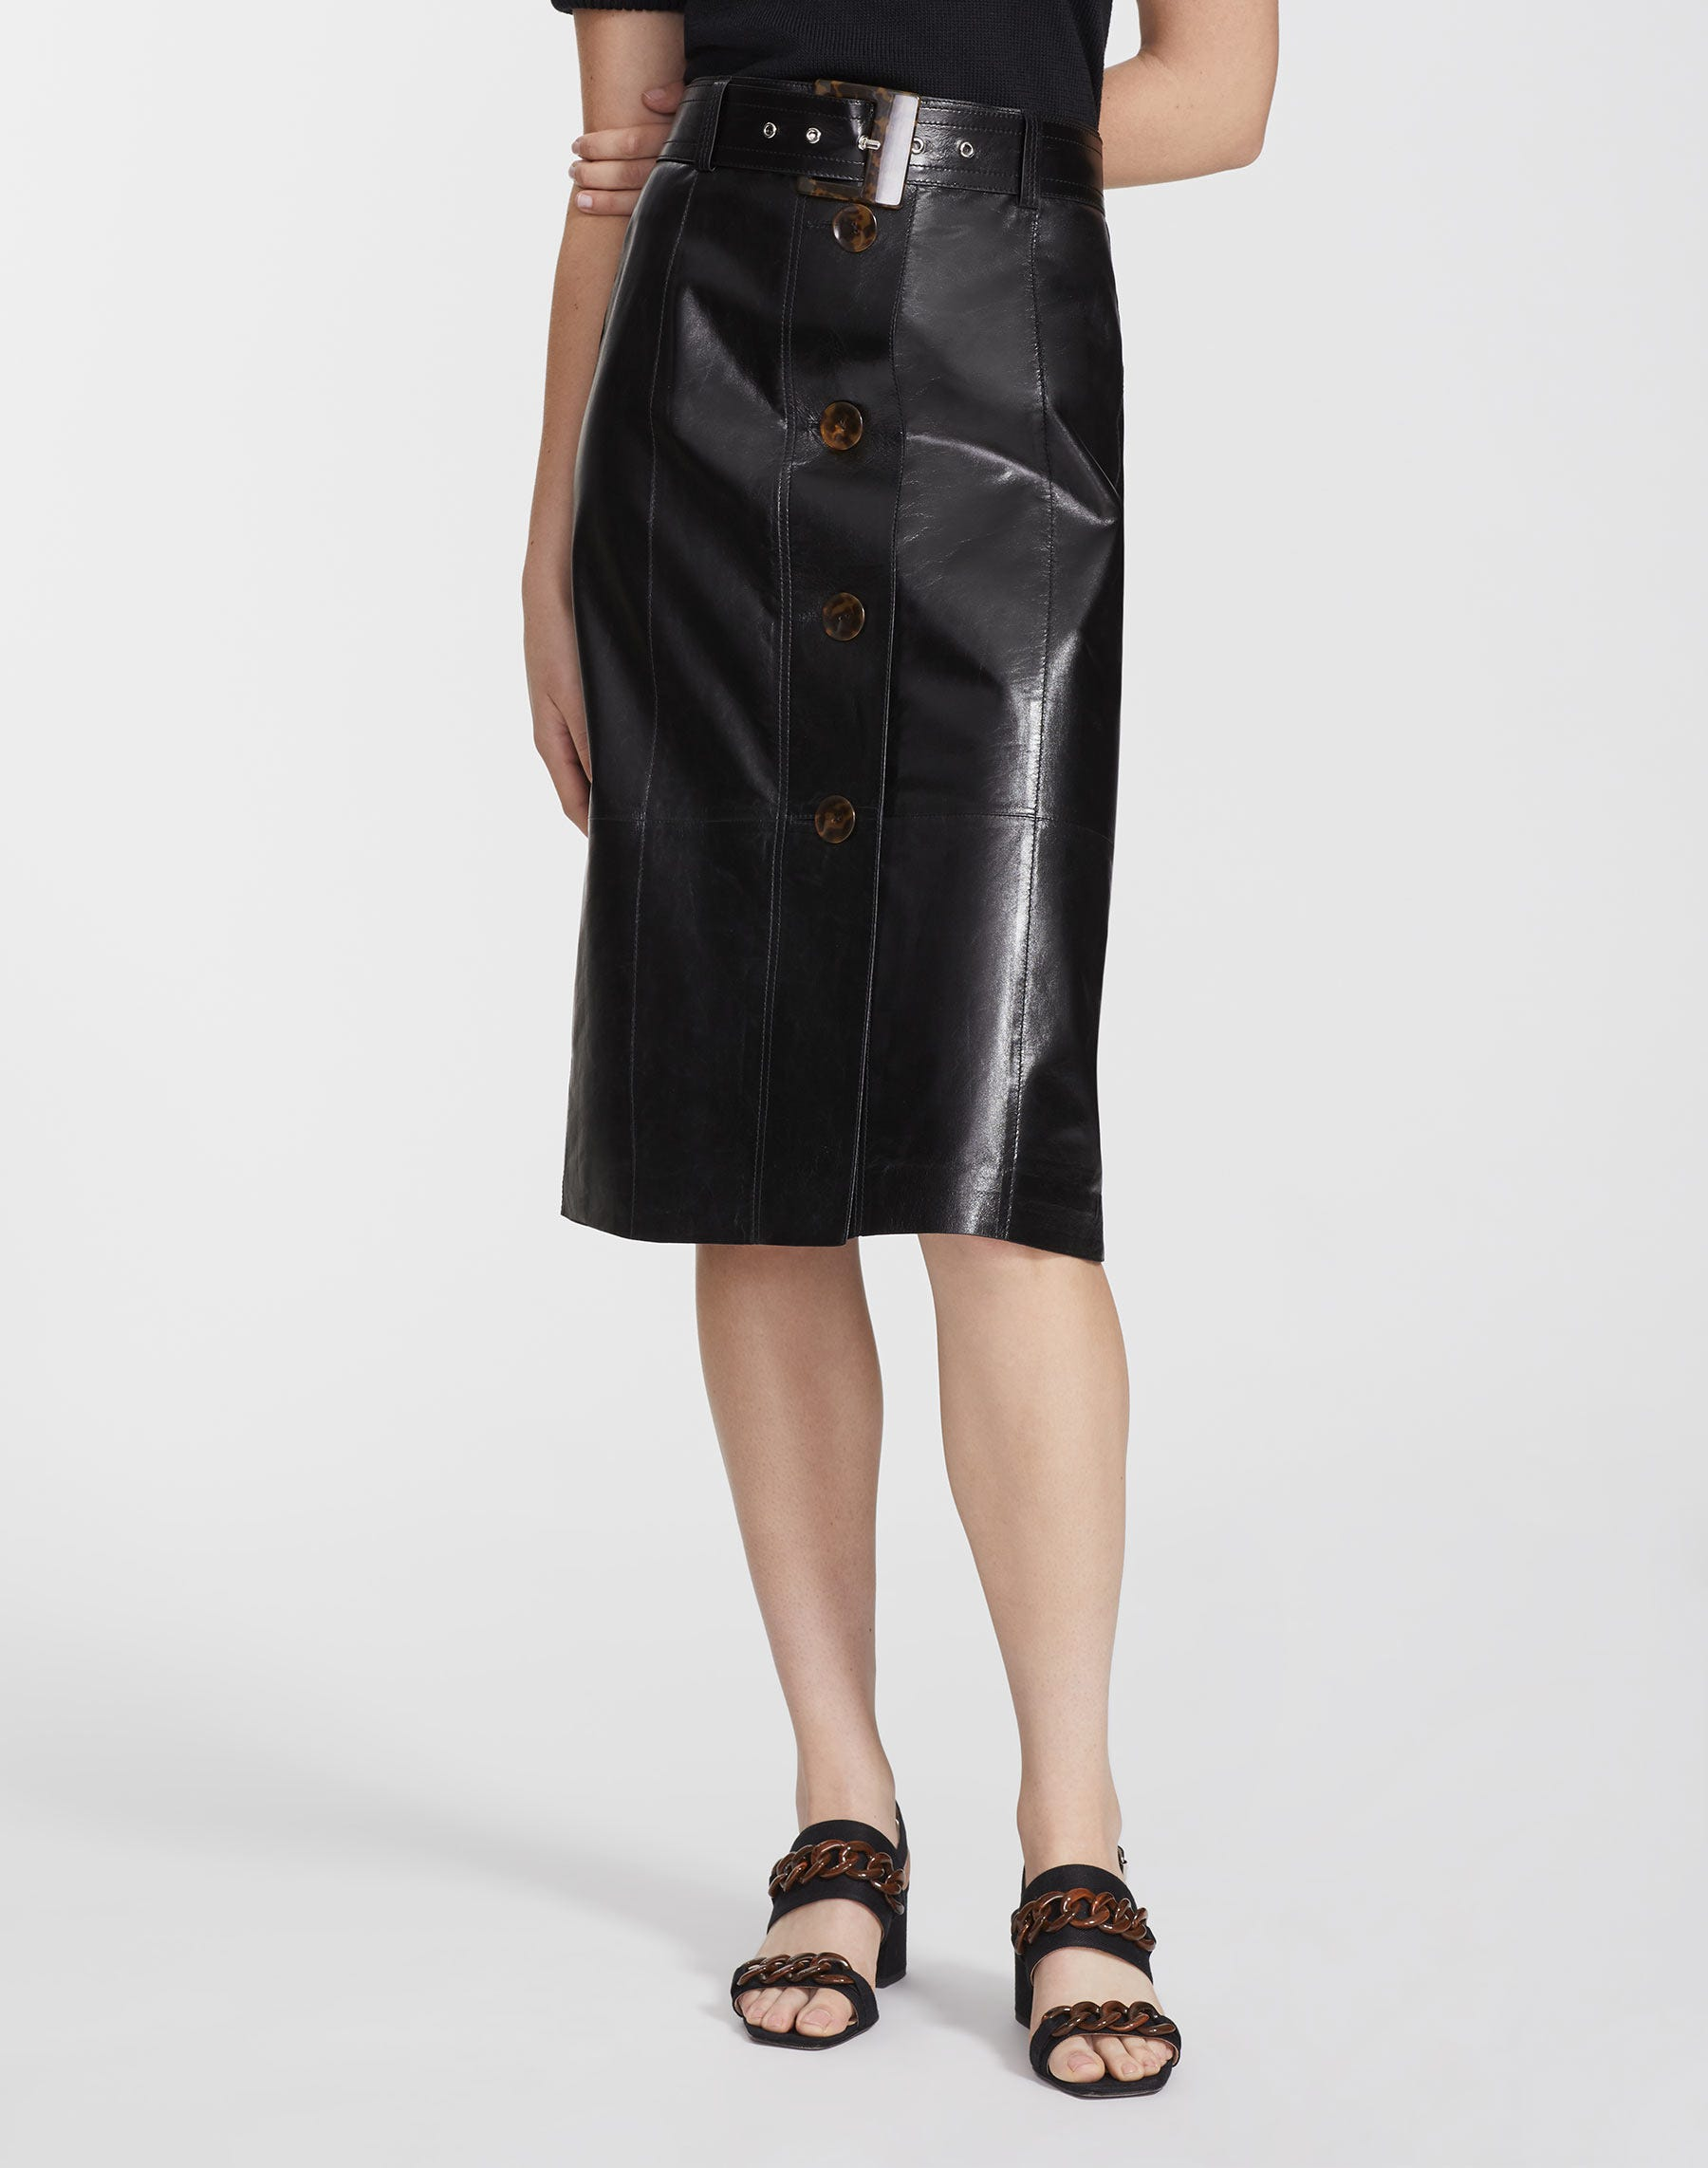 Lafayette 148 Skirts LACQUERED LAMBSKIN AVALON SKIRT